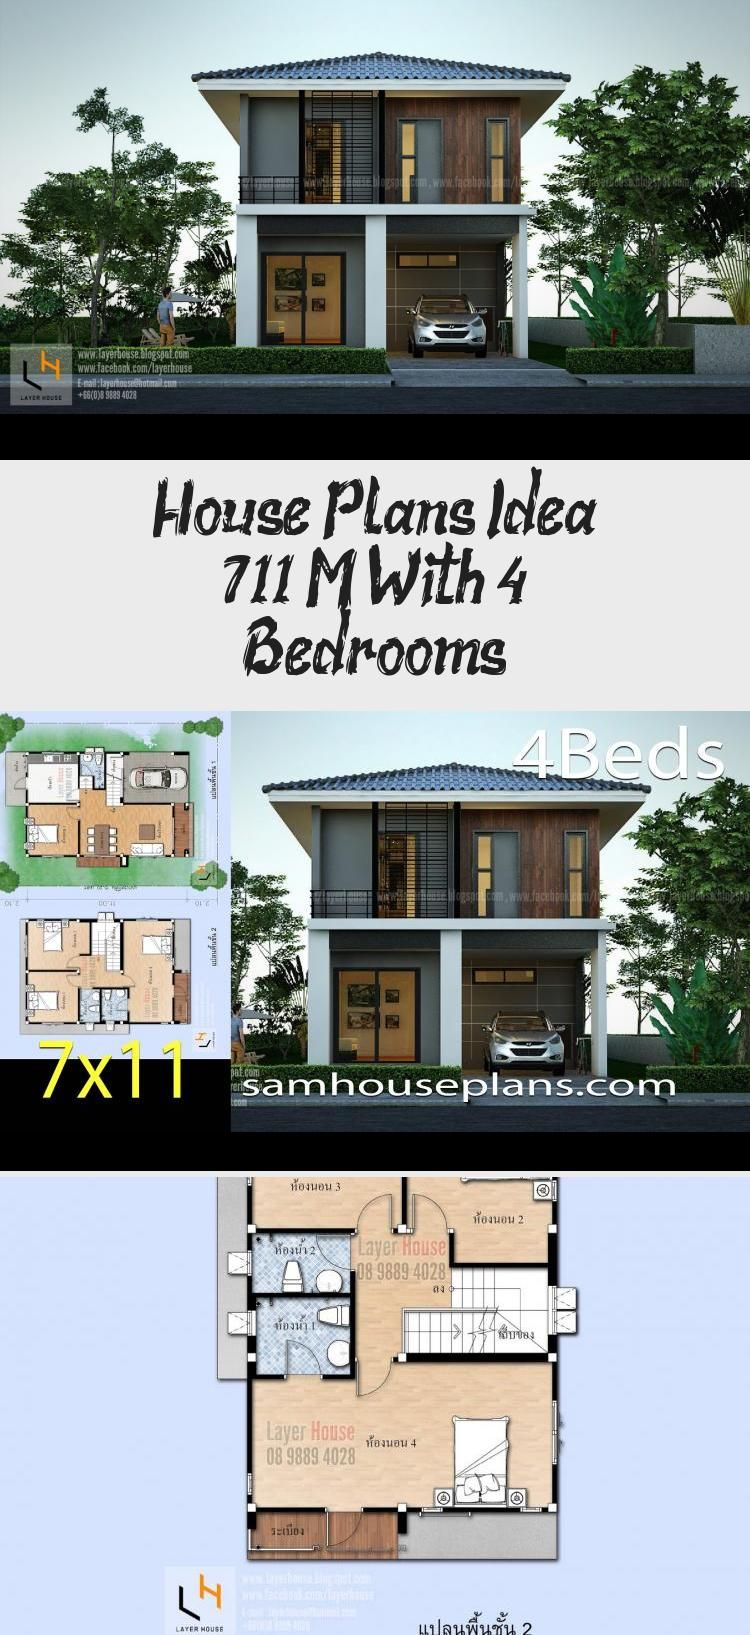 House Plans Idea 7x11 M With 4 Bedrooms Sam House Plans Smallhouseplansvintage Smallhouseplansunder900sqft Smallhouseplanstw In 2020 House Plans House Small House